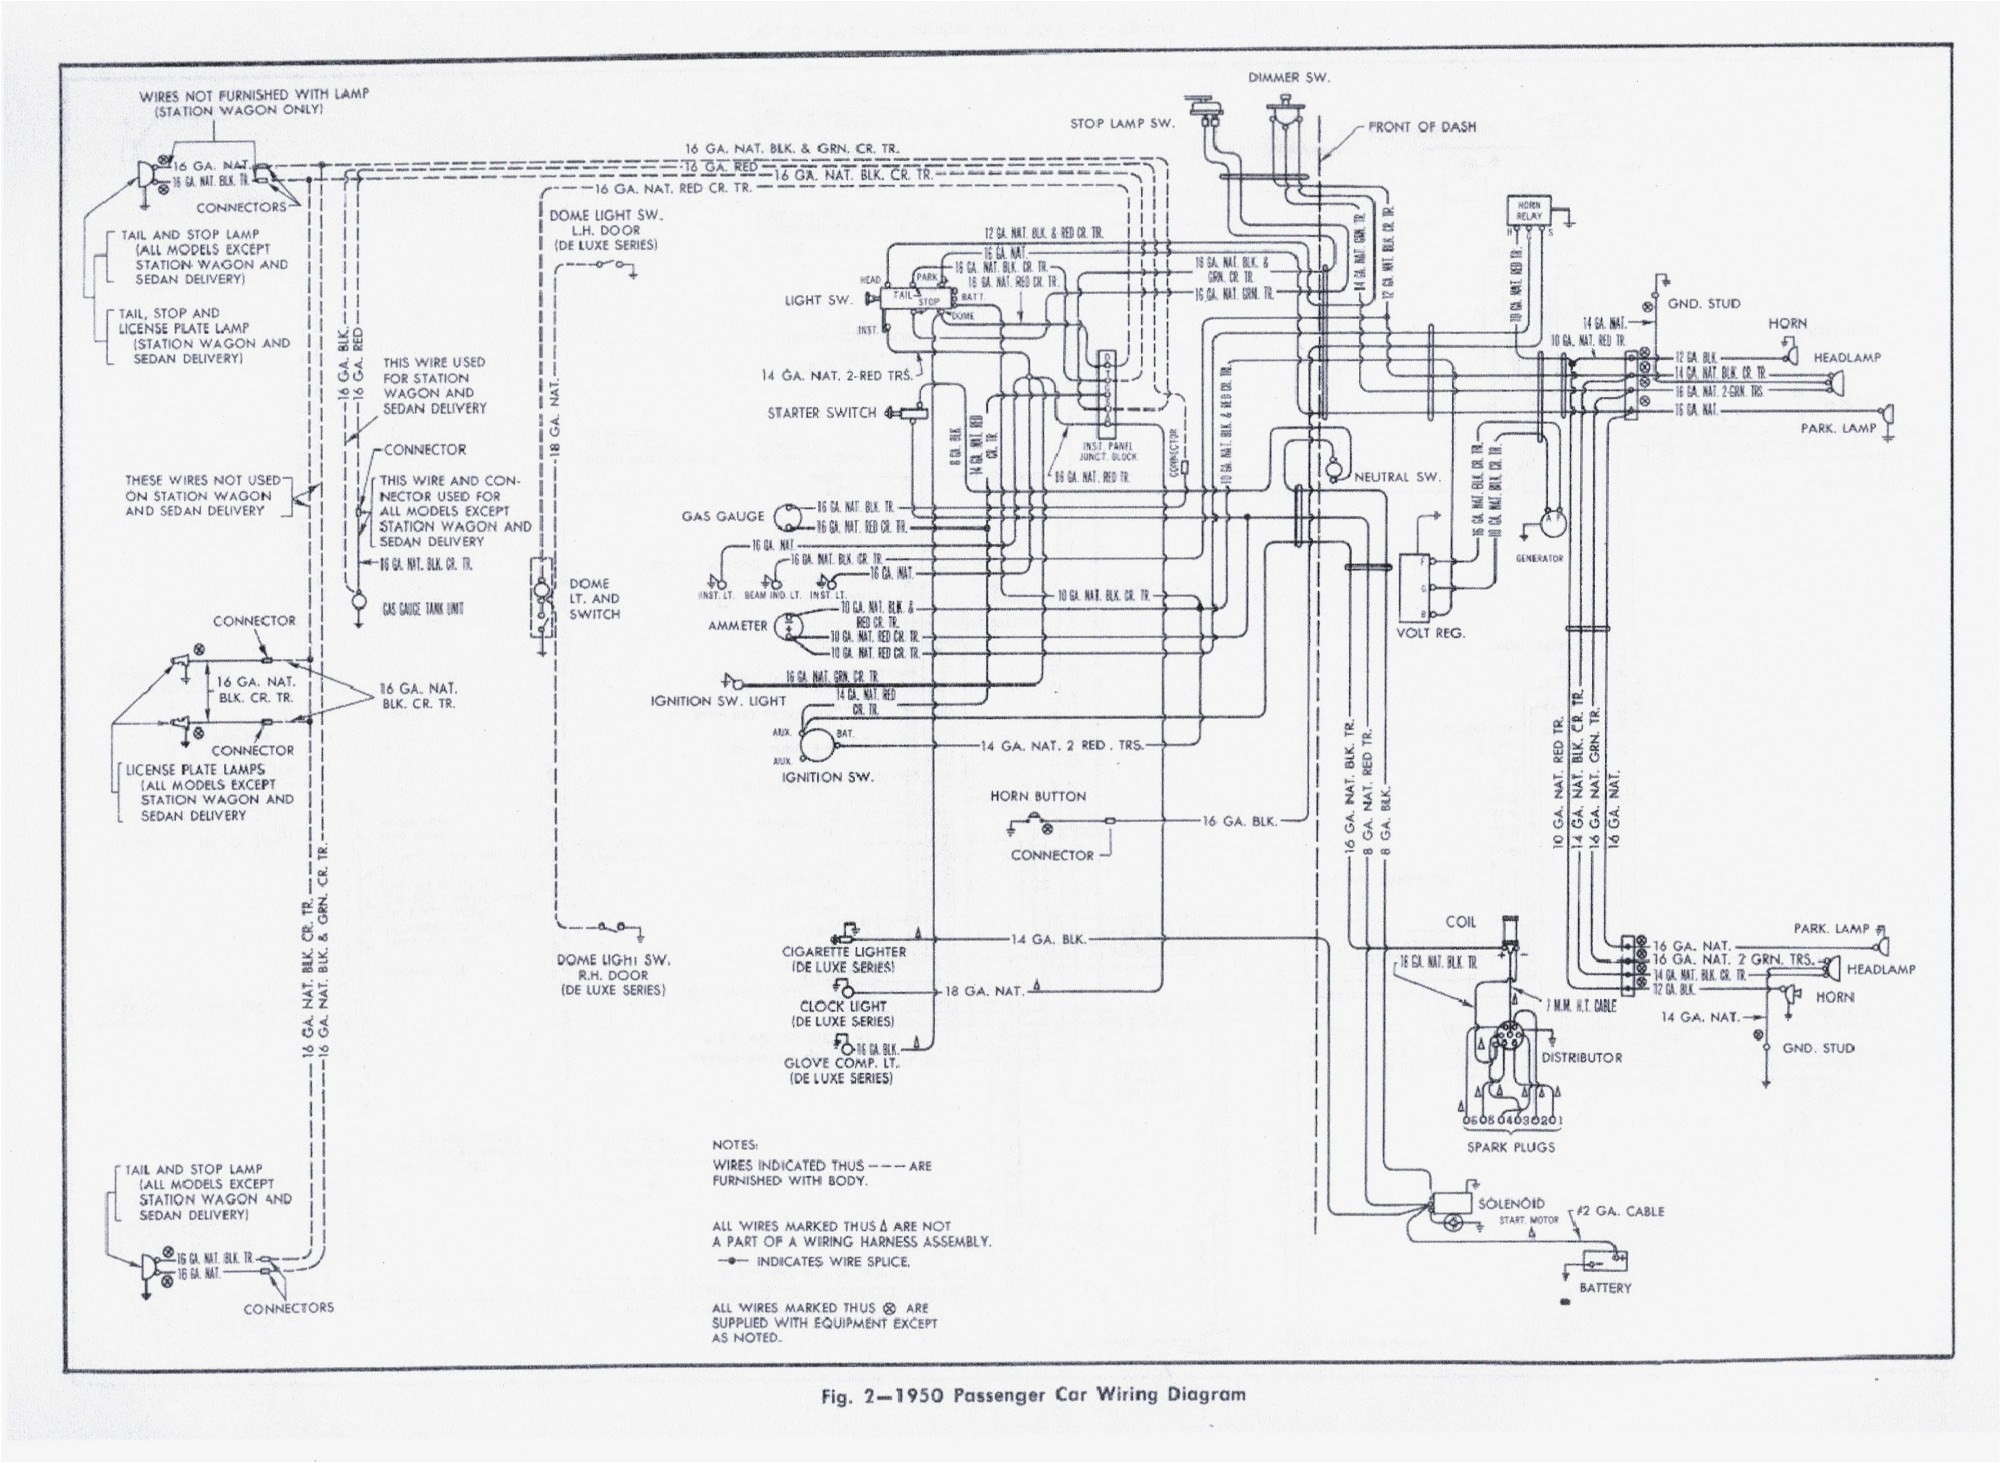 ... pride electric scooter wiring diagram example electrical circuit u2022  rh labs labs4 fun 3 Way